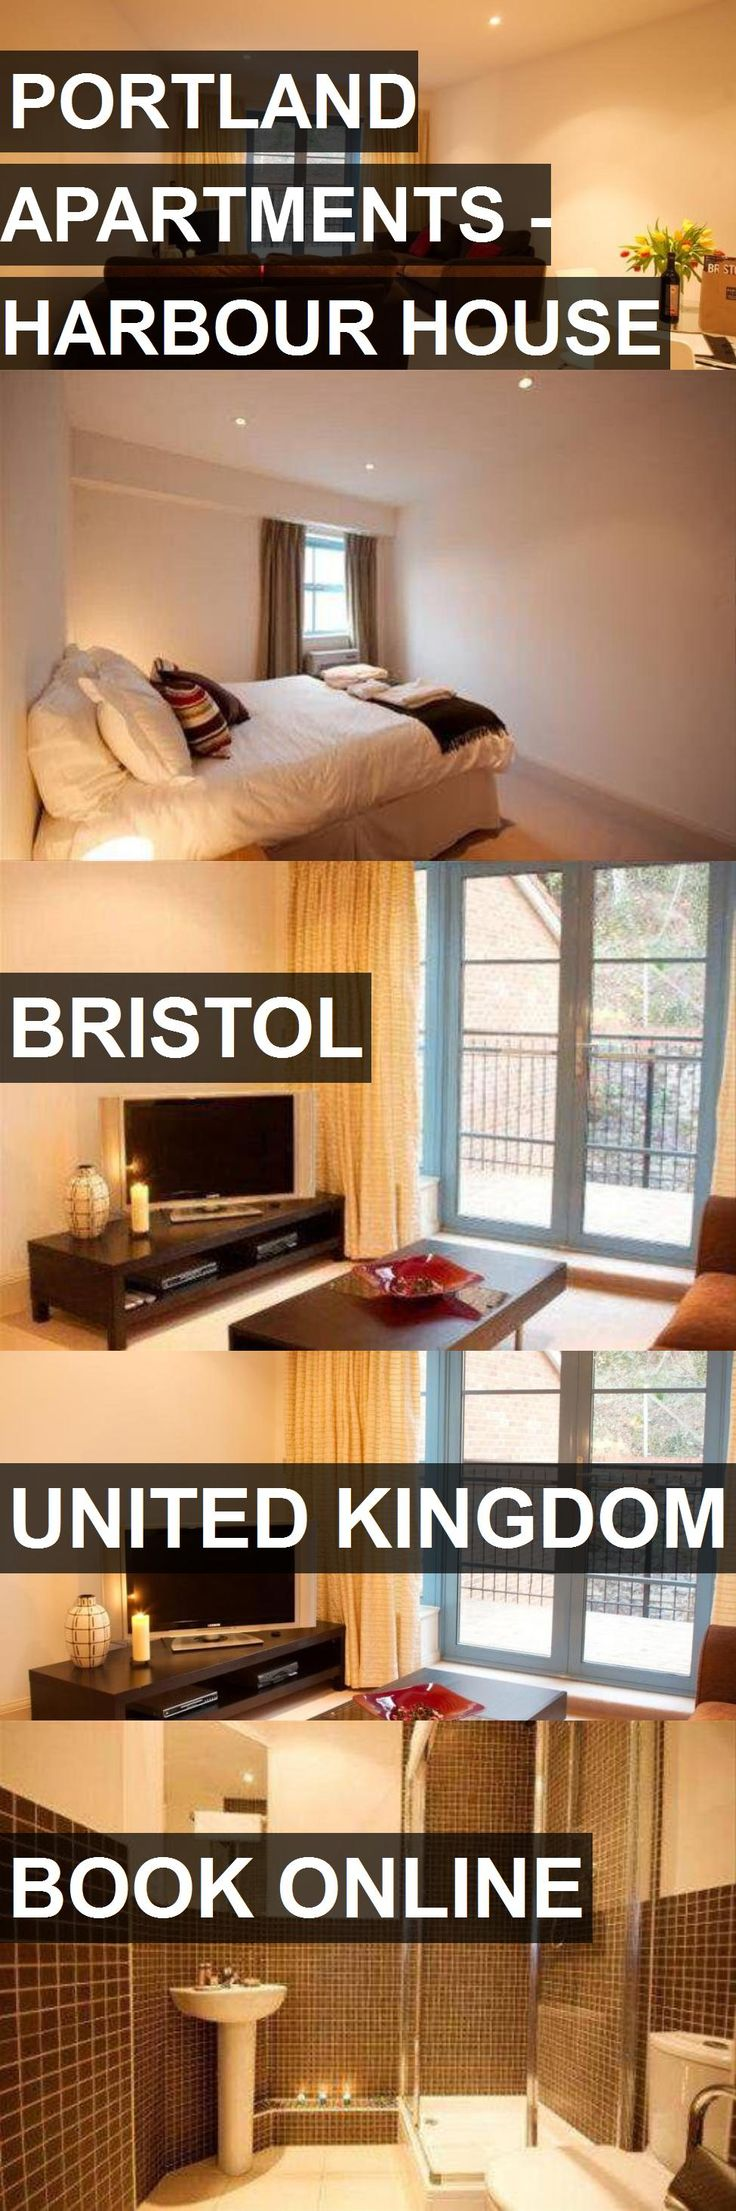 PORTLAND APARTMENTS - HARBOUR HOUSE in Bristol, United Kingdom. For more information, photos, reviews and best prices please follow the link. #UnitedKingdom #Bristol #travel #vacation #apartment